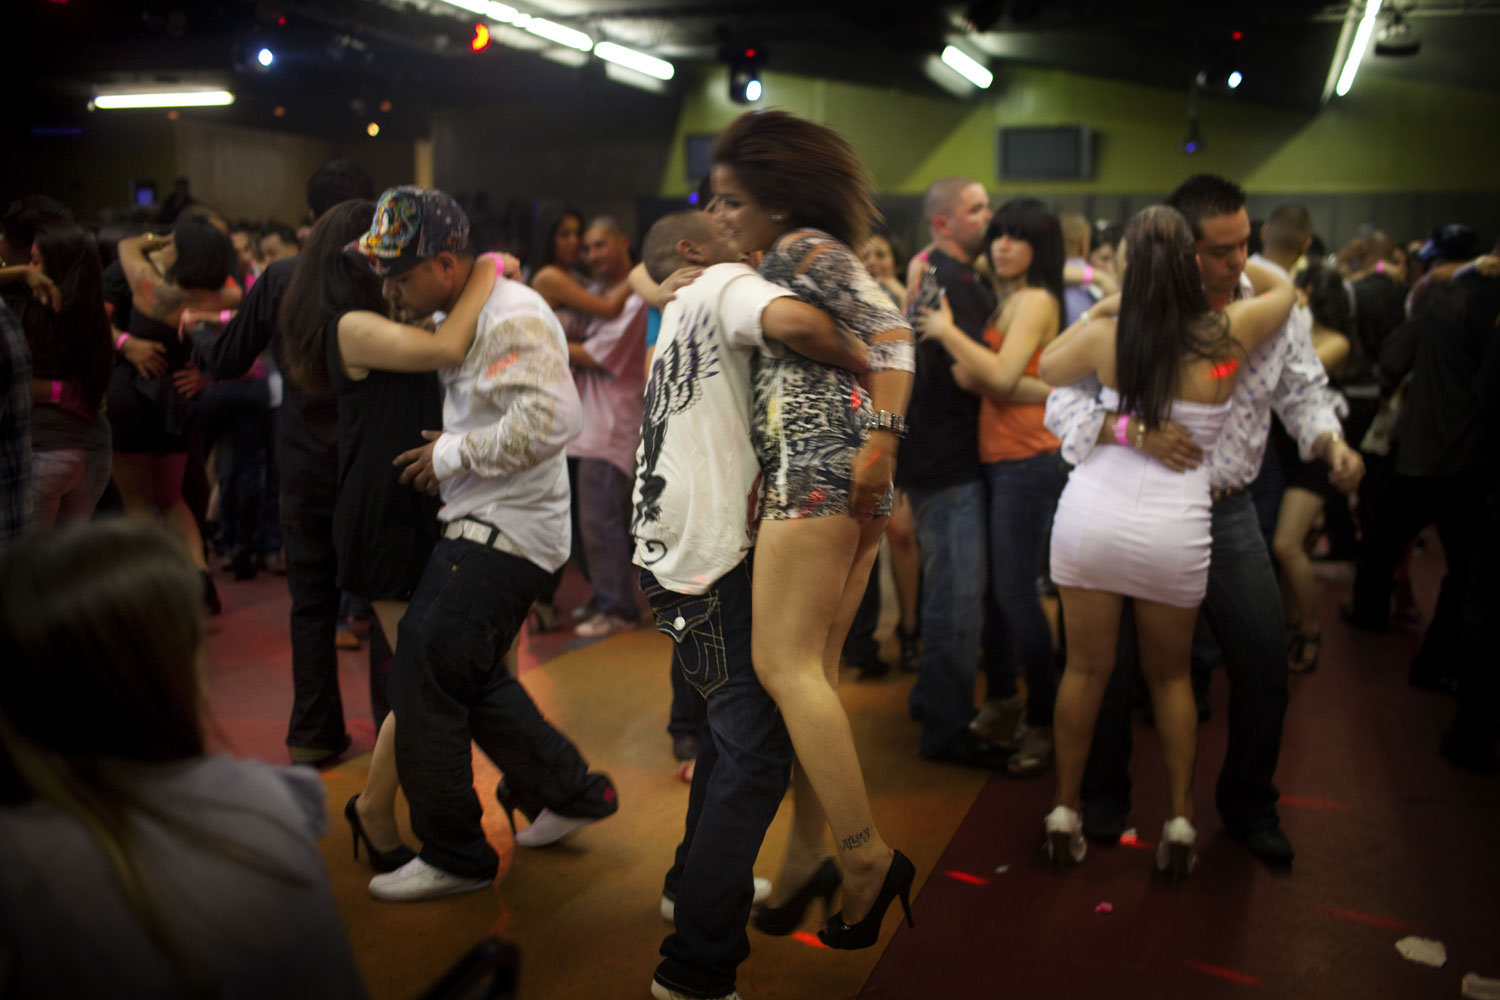 On the Dance Floor                               The clubs specializing in narcocorridos attract many Mexican Americans in search of an identity that connects them to their heritage across the border